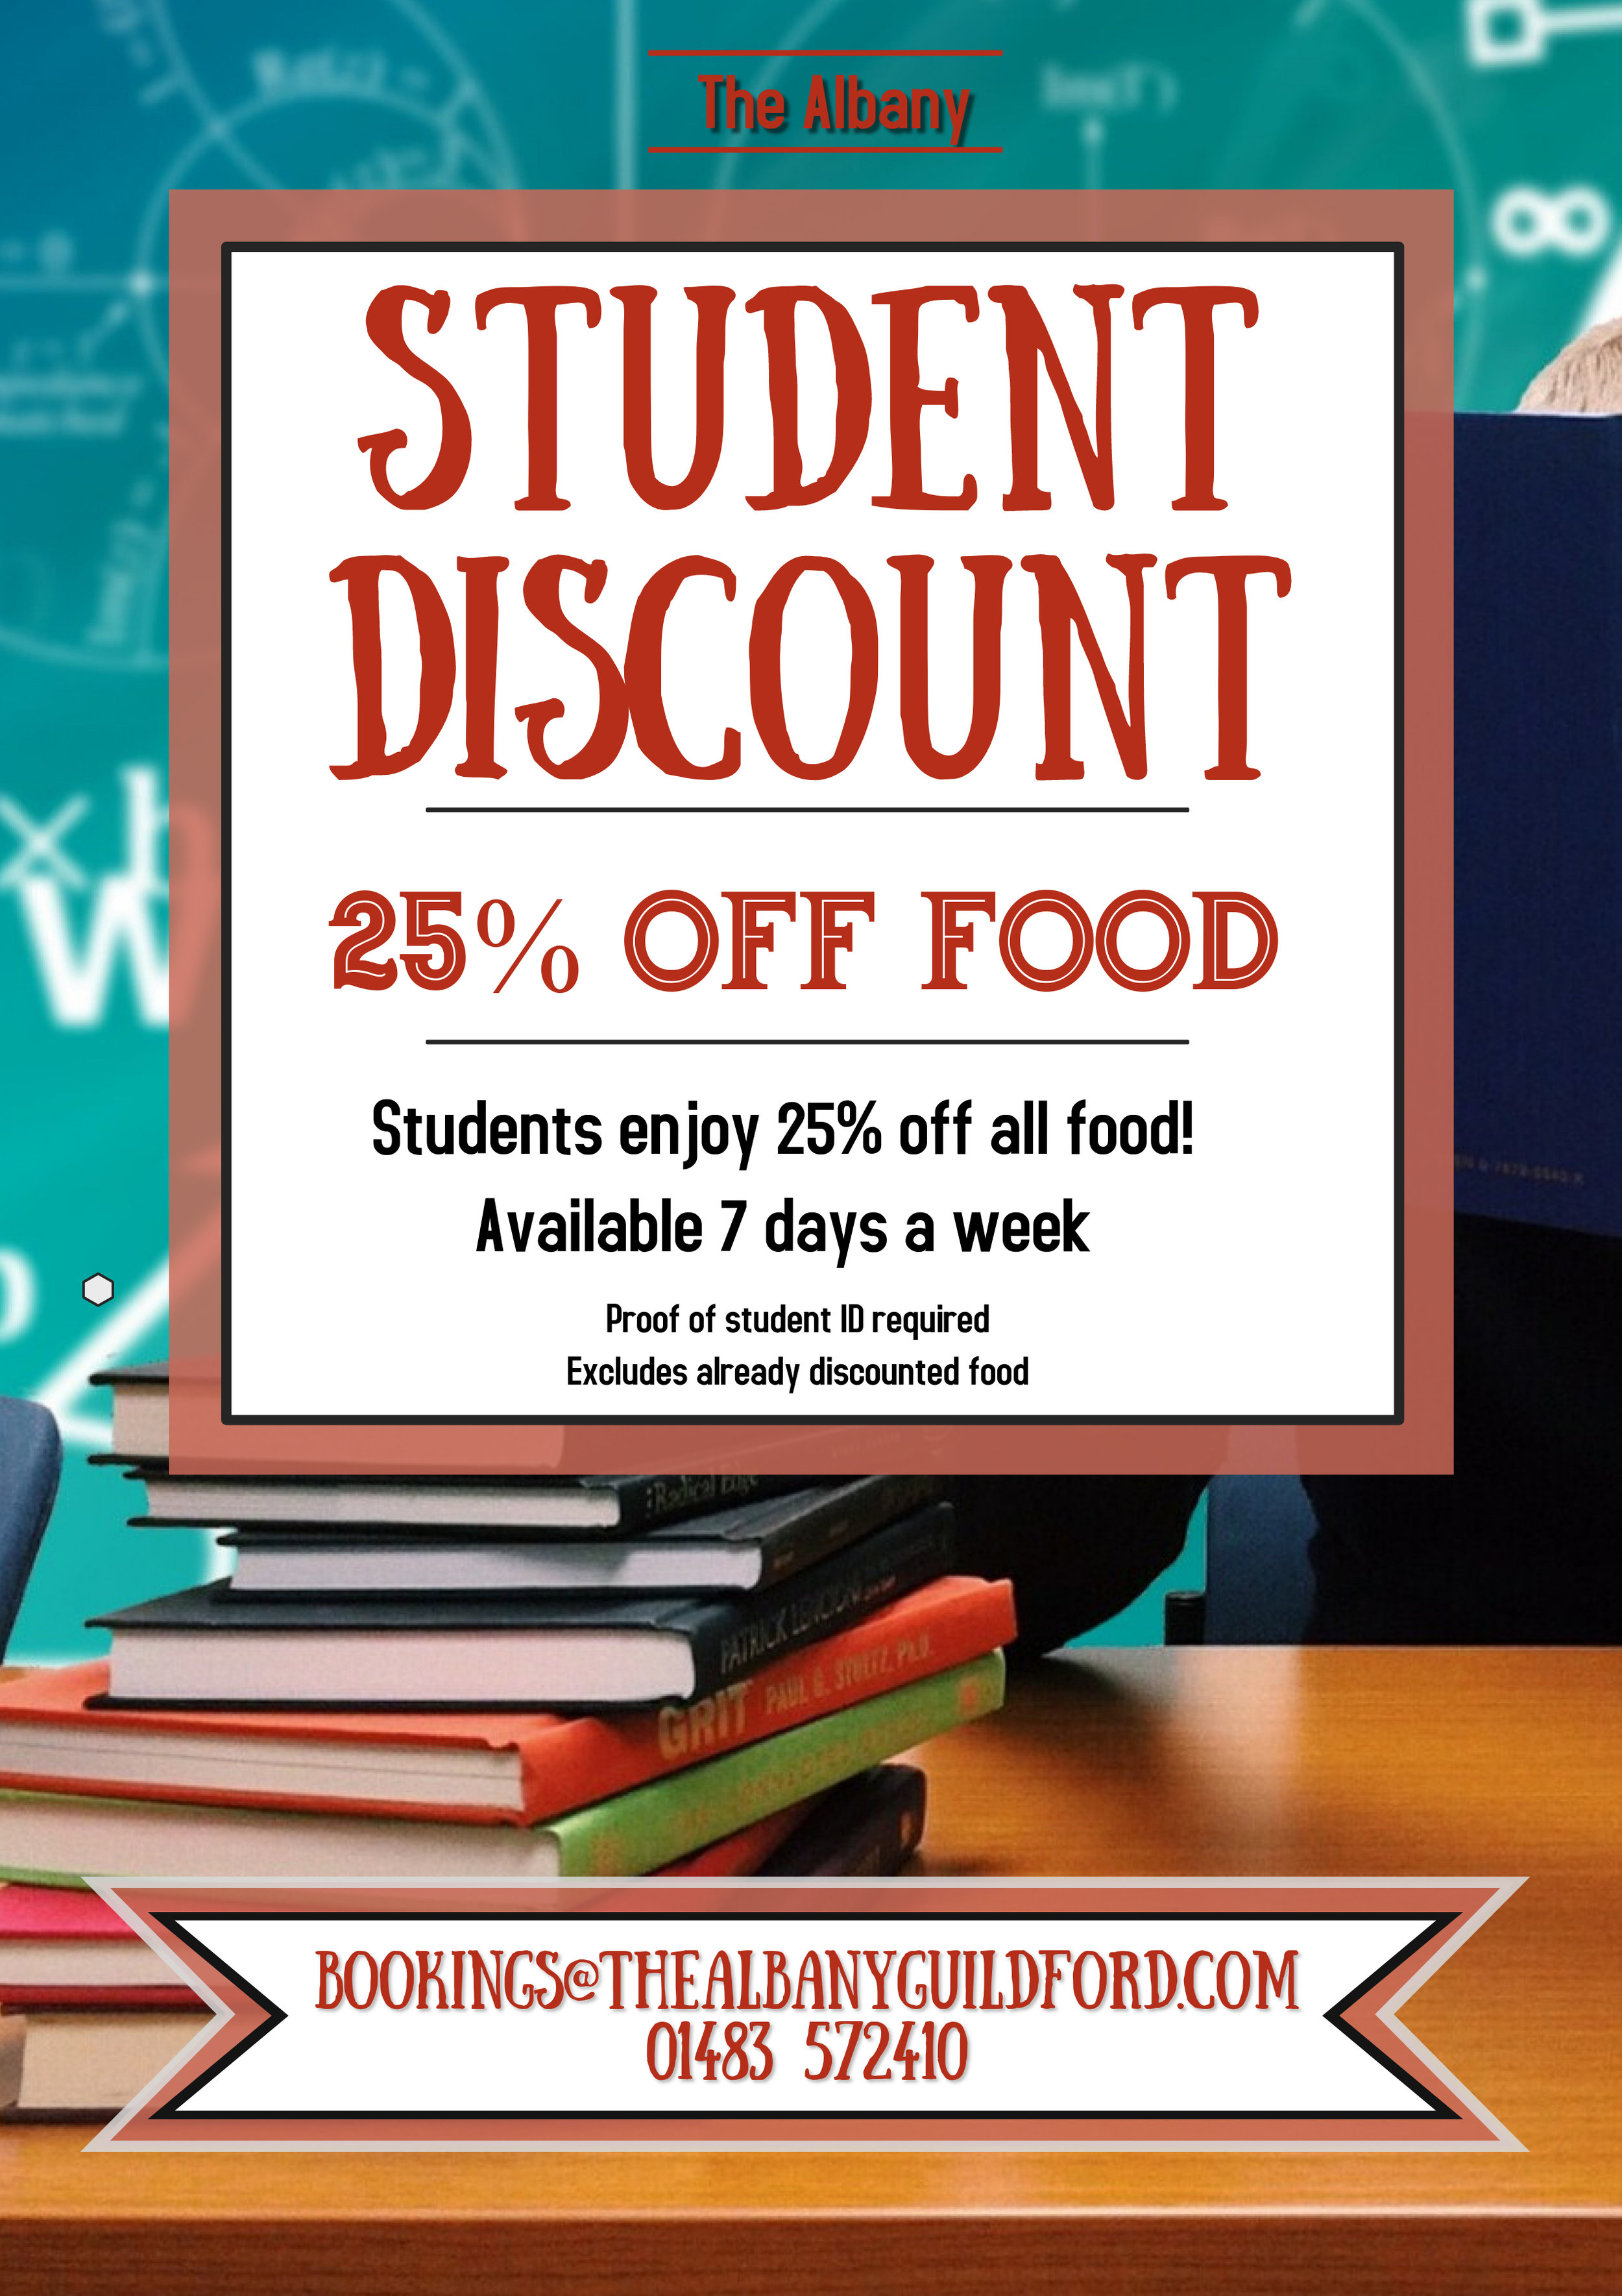 Student discount - If you are looking to save money on Student - don't miss out on our new deal!Students enjoy 25% off all foodAvailable 7 days a week